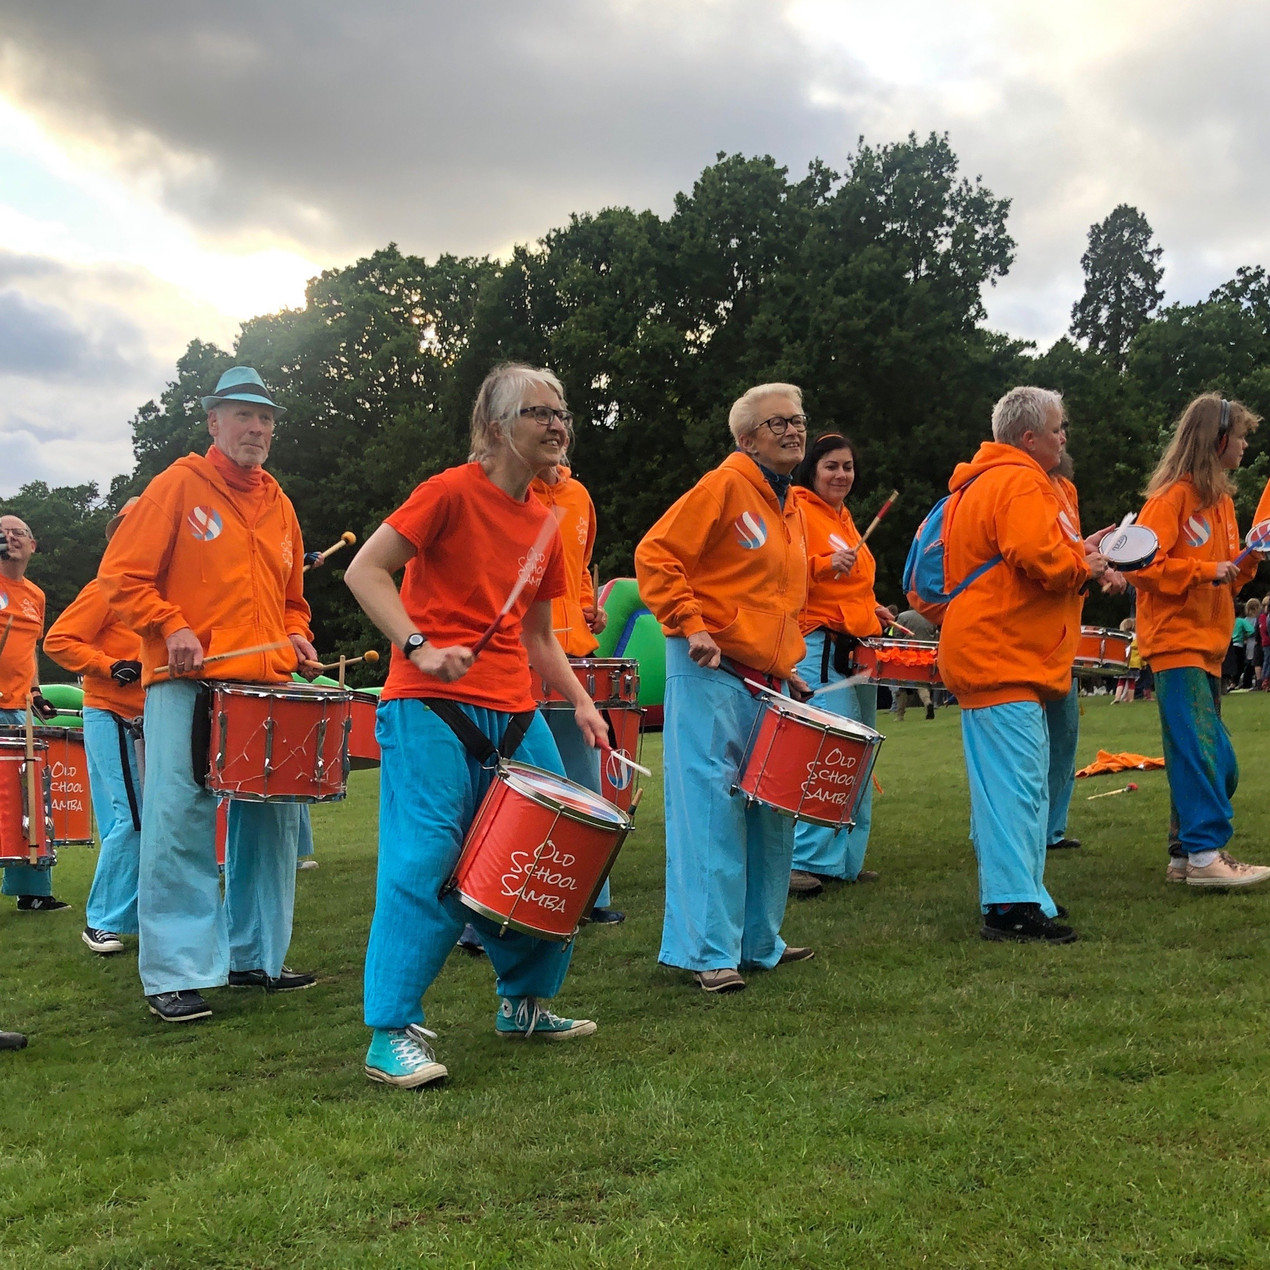 Old School Samba performing at the Marlborough House School Camp out